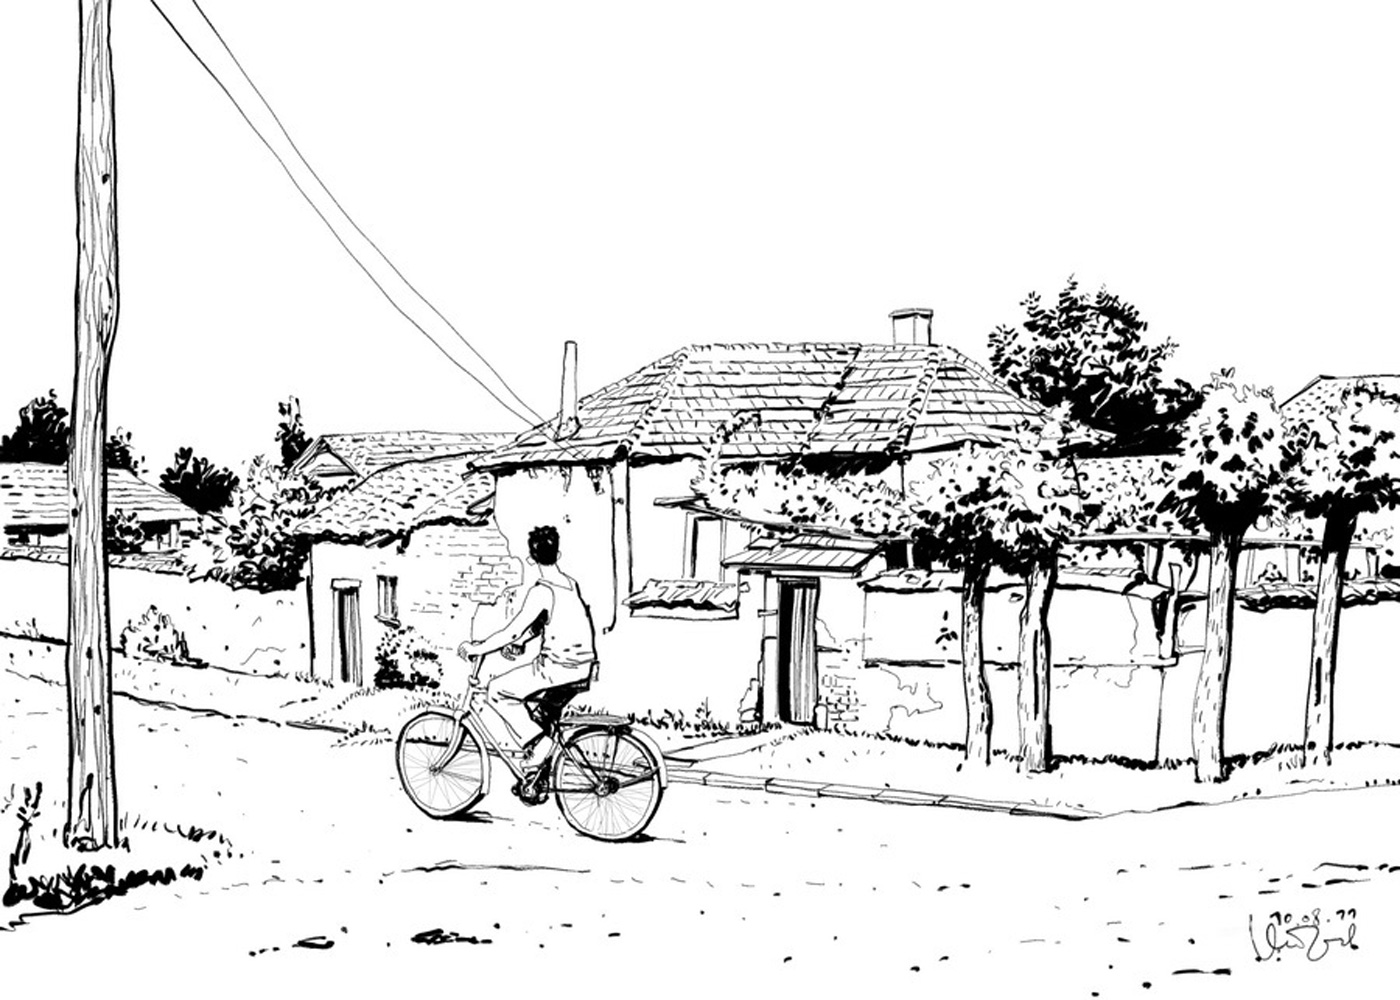 Comic Art Of a Boy Cycling In Village Street